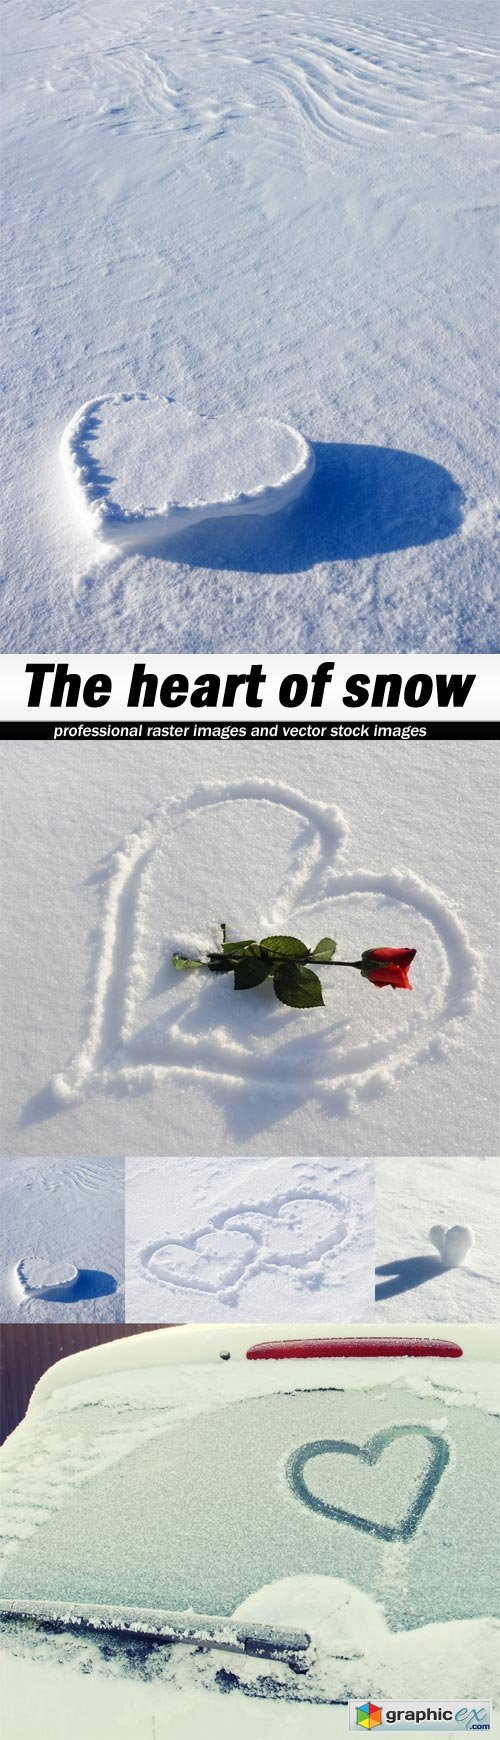 The heart of snow